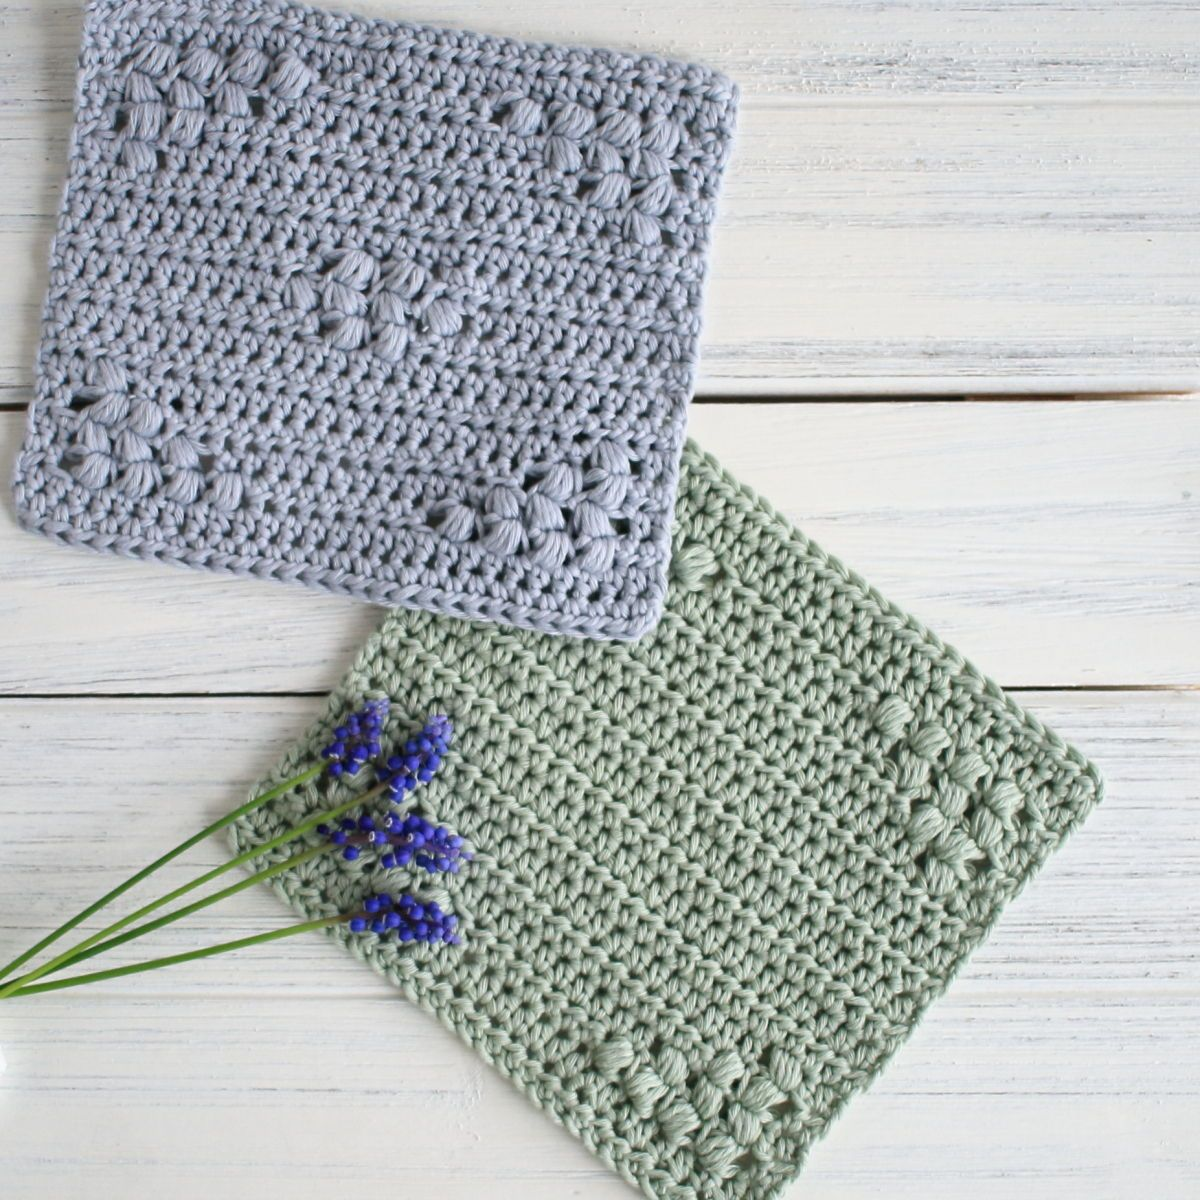 blue and green dishcloth